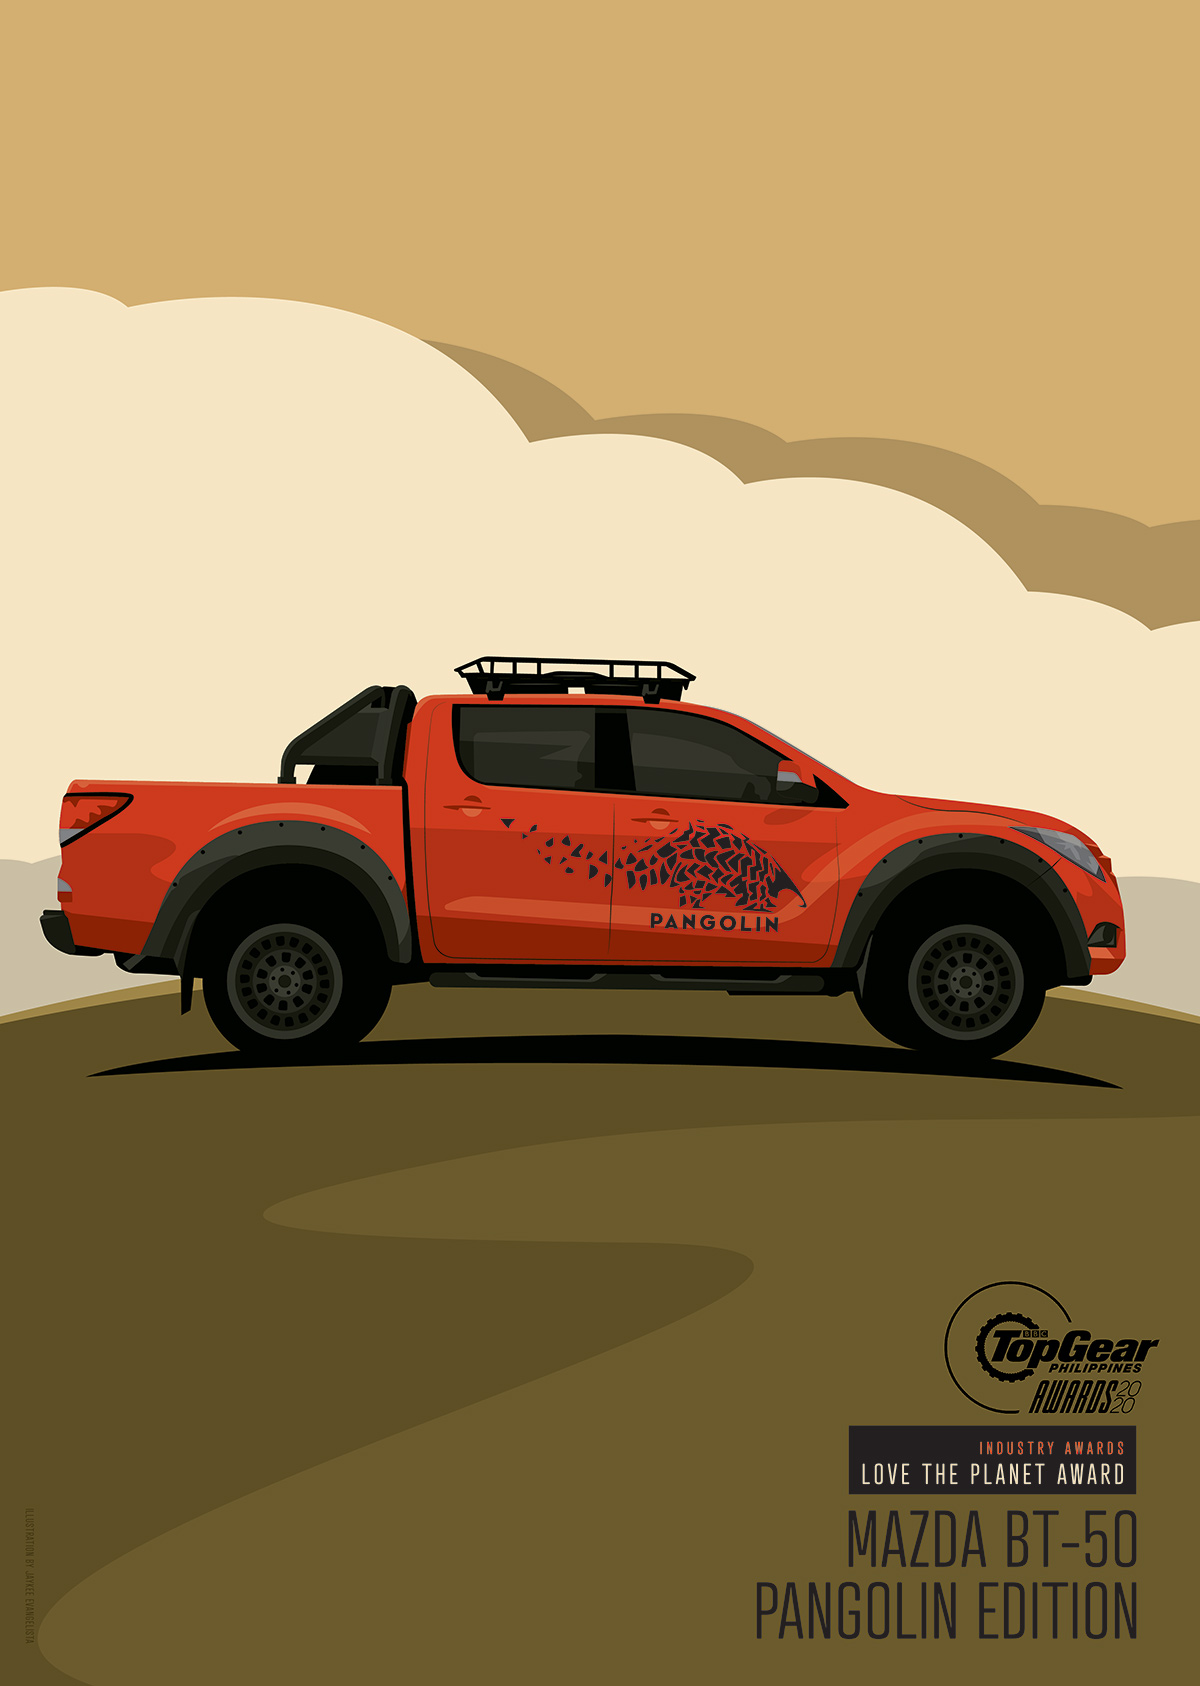 Top Gear Philippines' Love the Planet Award – Mazda BT-50 Pangolin Edition